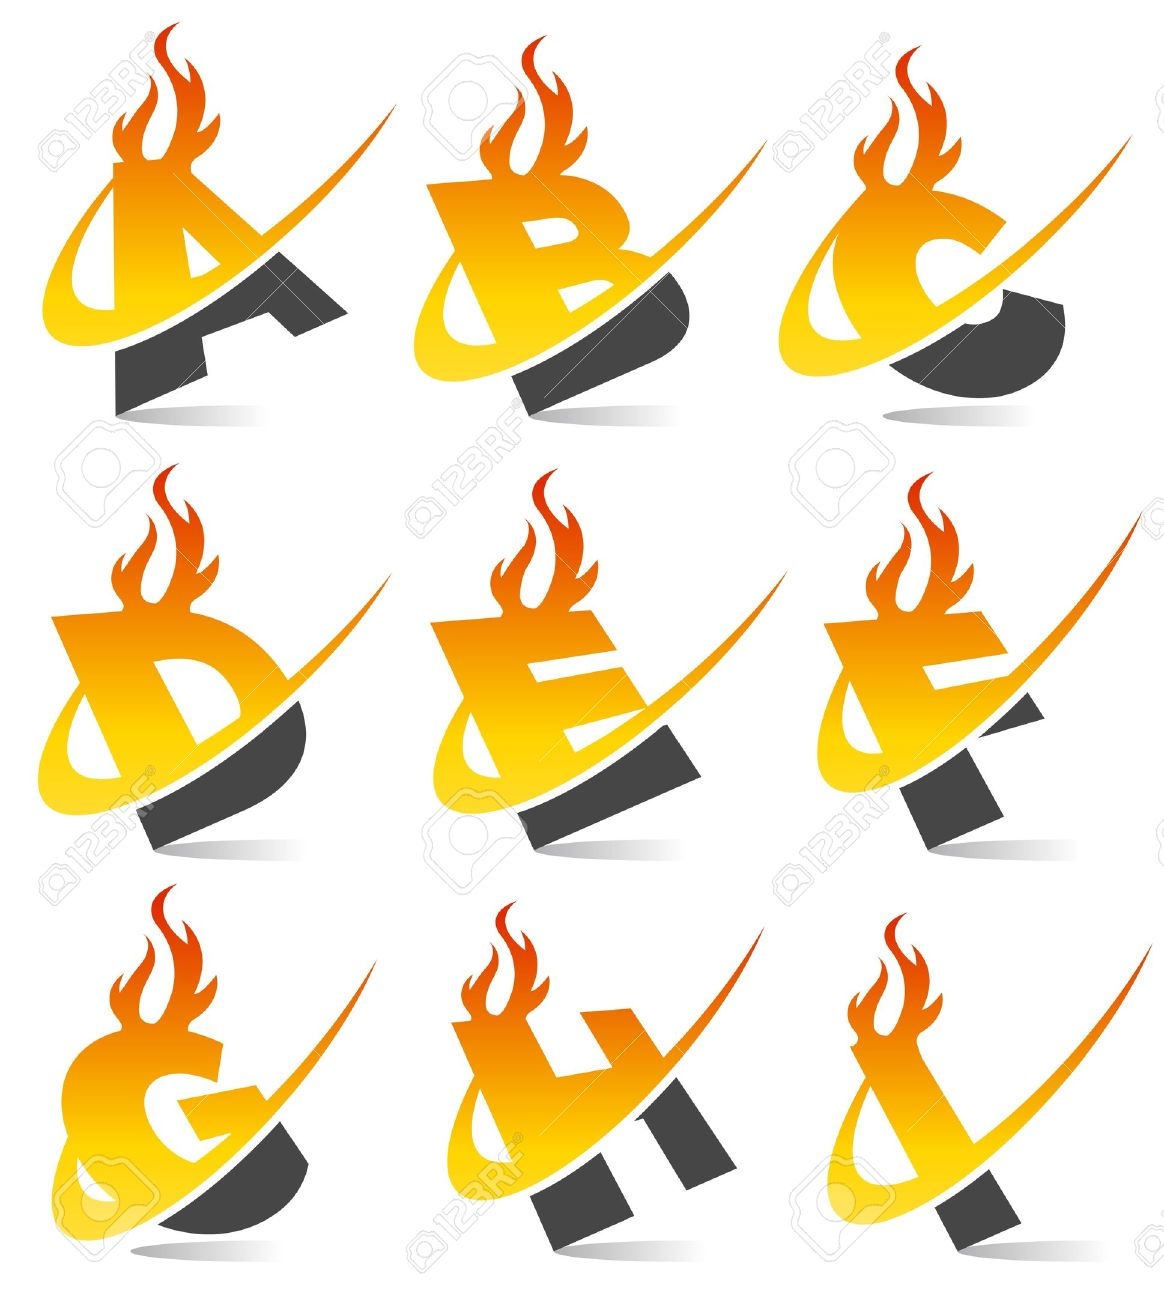 Clipart flaming letters clipart transparent library Flame Font Images & Stock Pictures. Royalty Free Flame Font Photos ... clipart transparent library